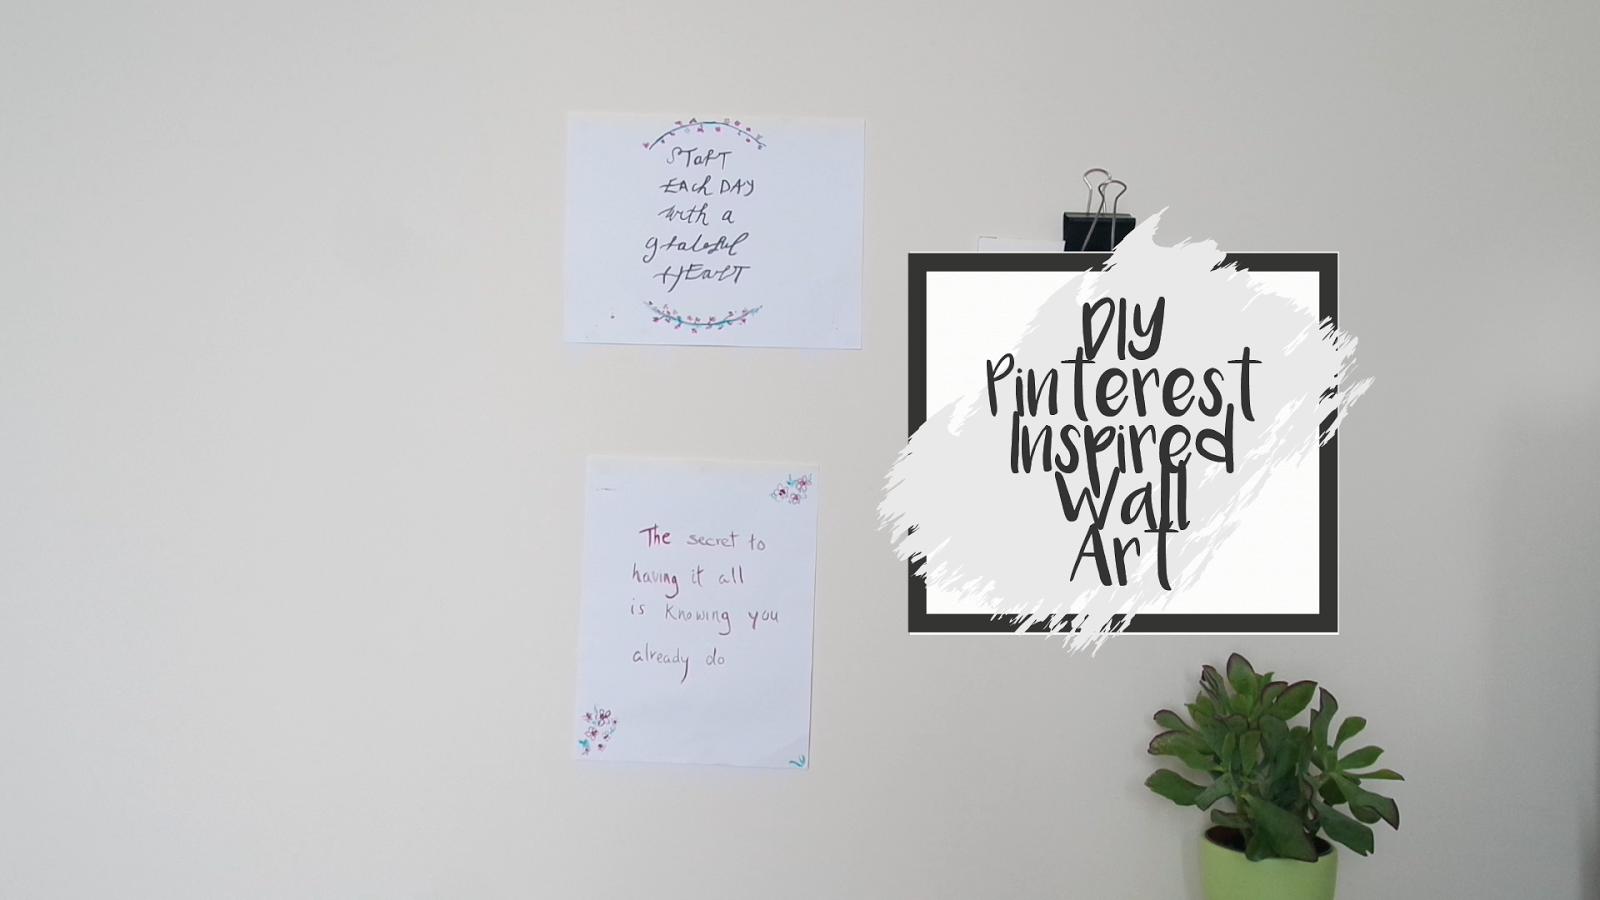 Inspirational DIY Pinterest Inspired Wall Art Quote Video